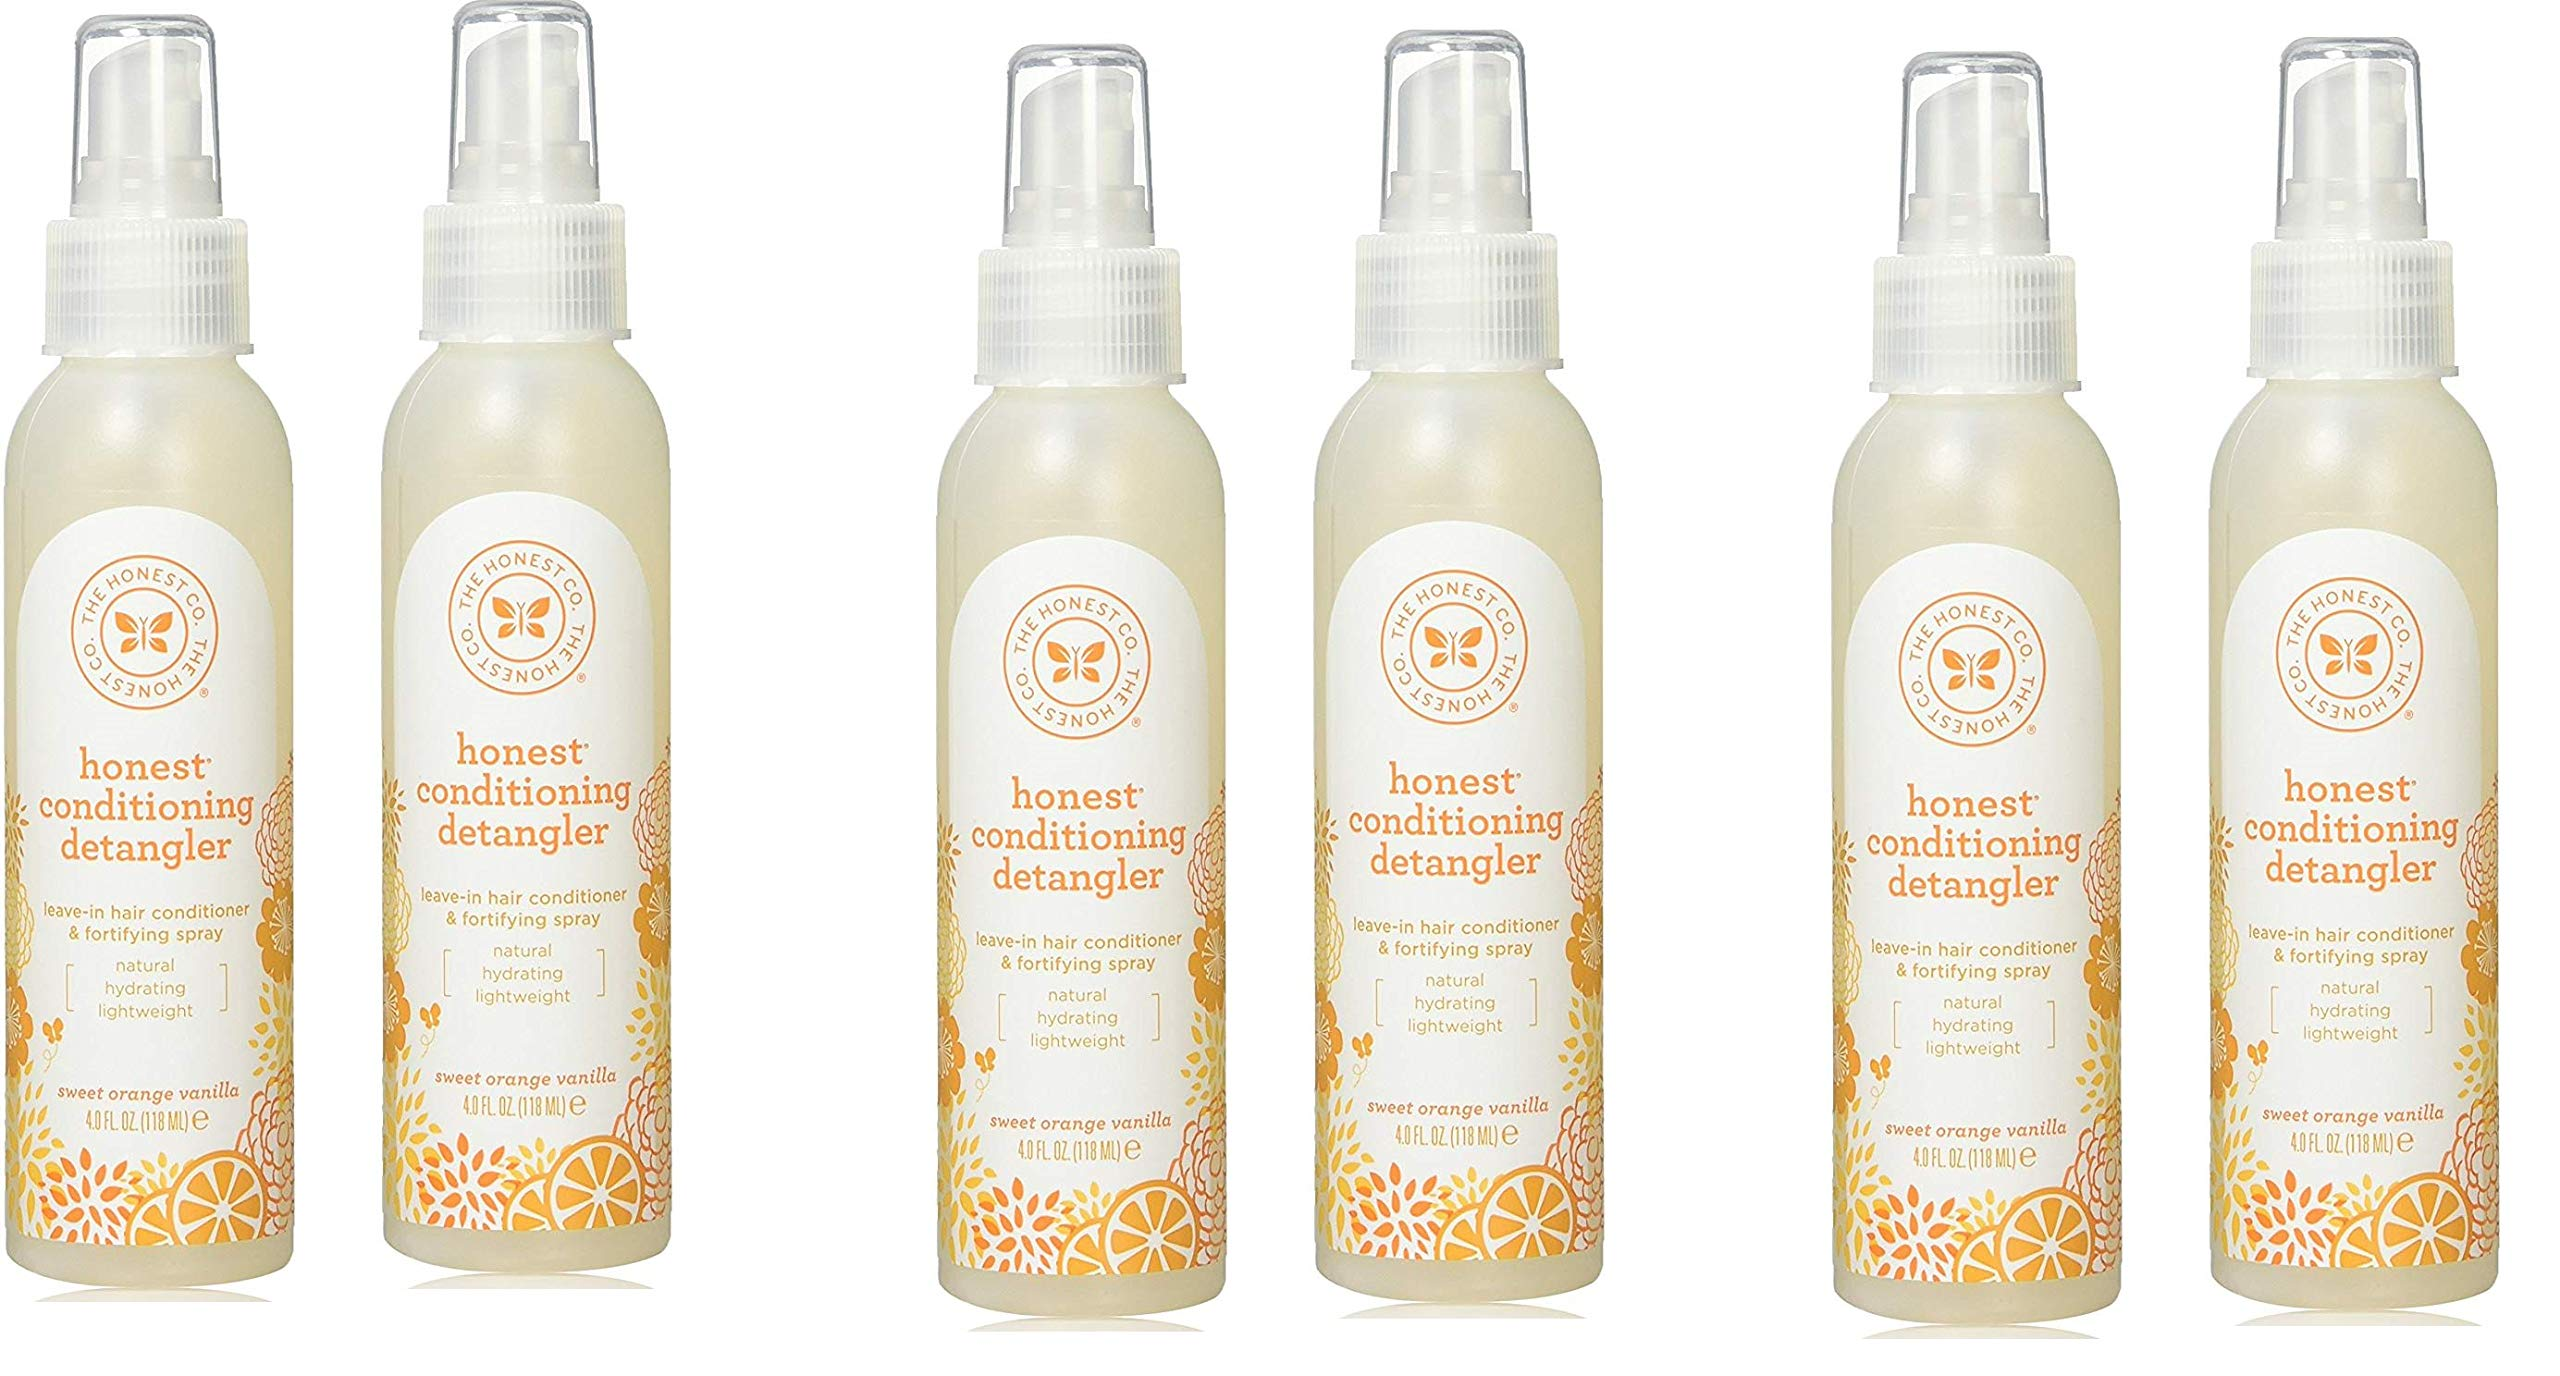 Conditioning Detangler, Leave-in Conditioner and Fortifying Spray - Sweet Orange Vanilla, 4 fl oz, 6 Bottles